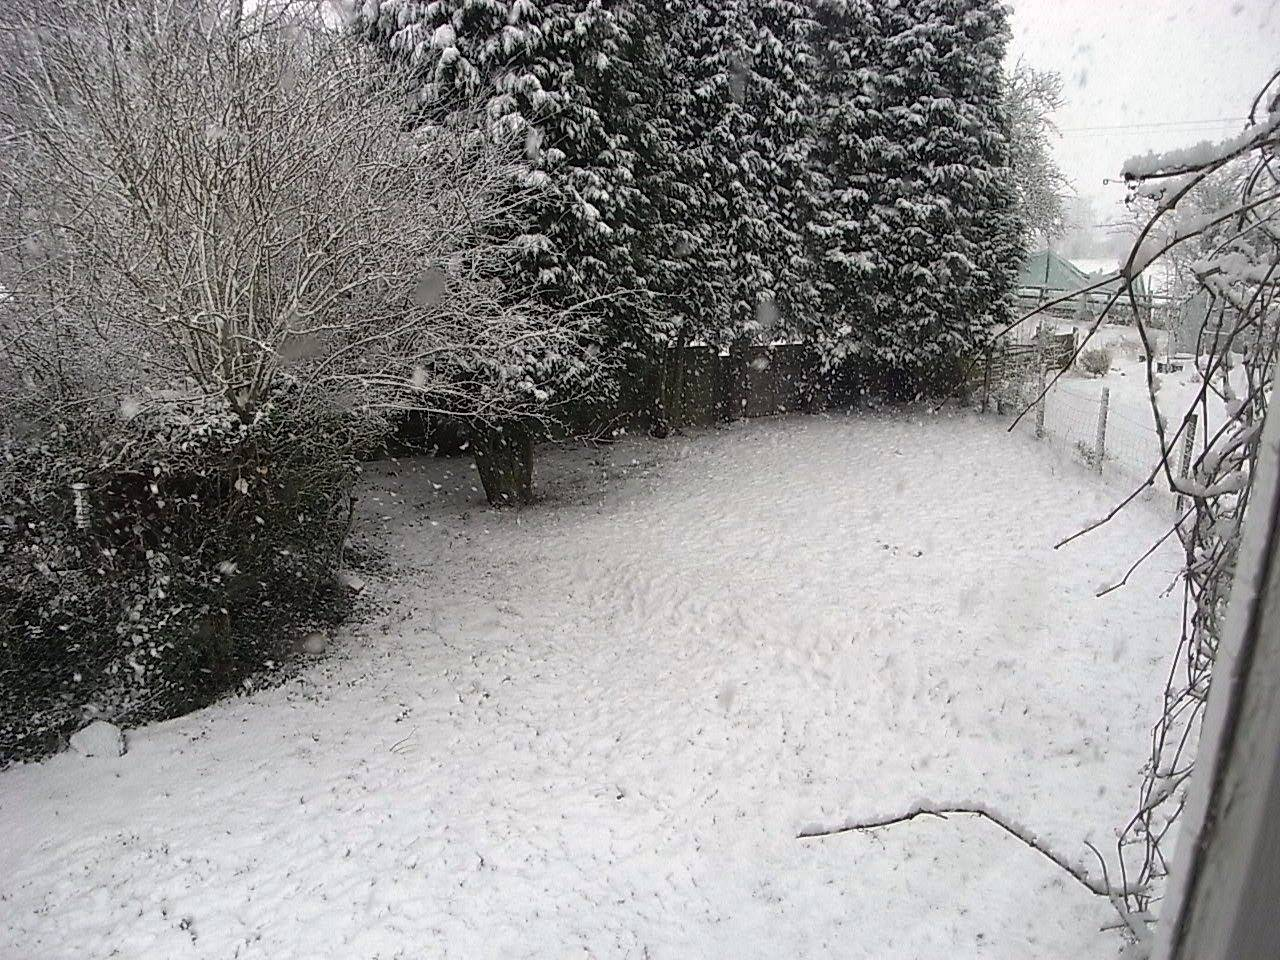 Snow Falling on the Garden